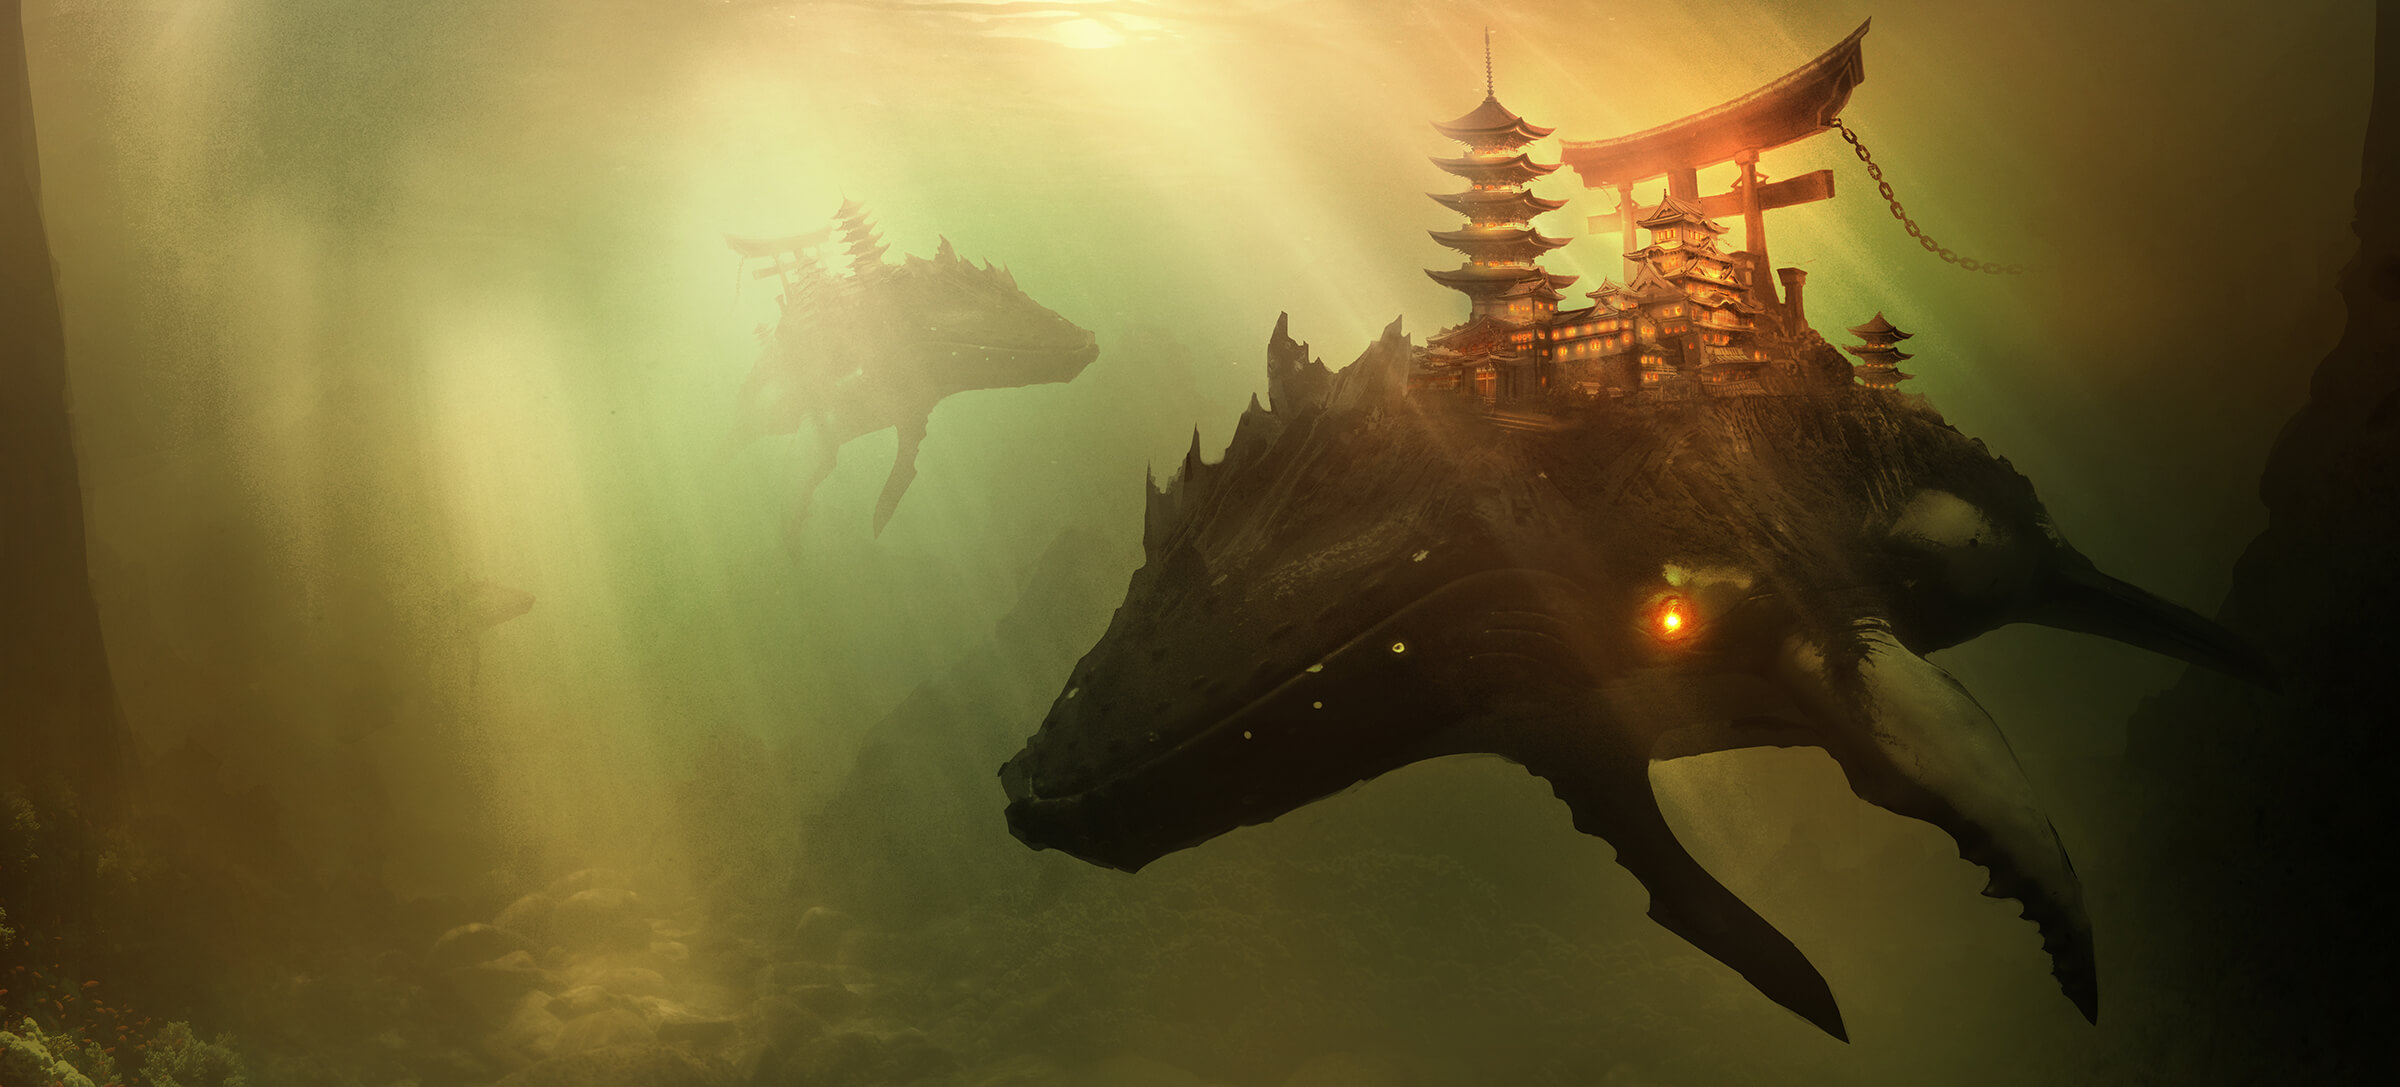 Whales swim through murky, rocky water, carrying pagoda-style castles and torii gates on their back.